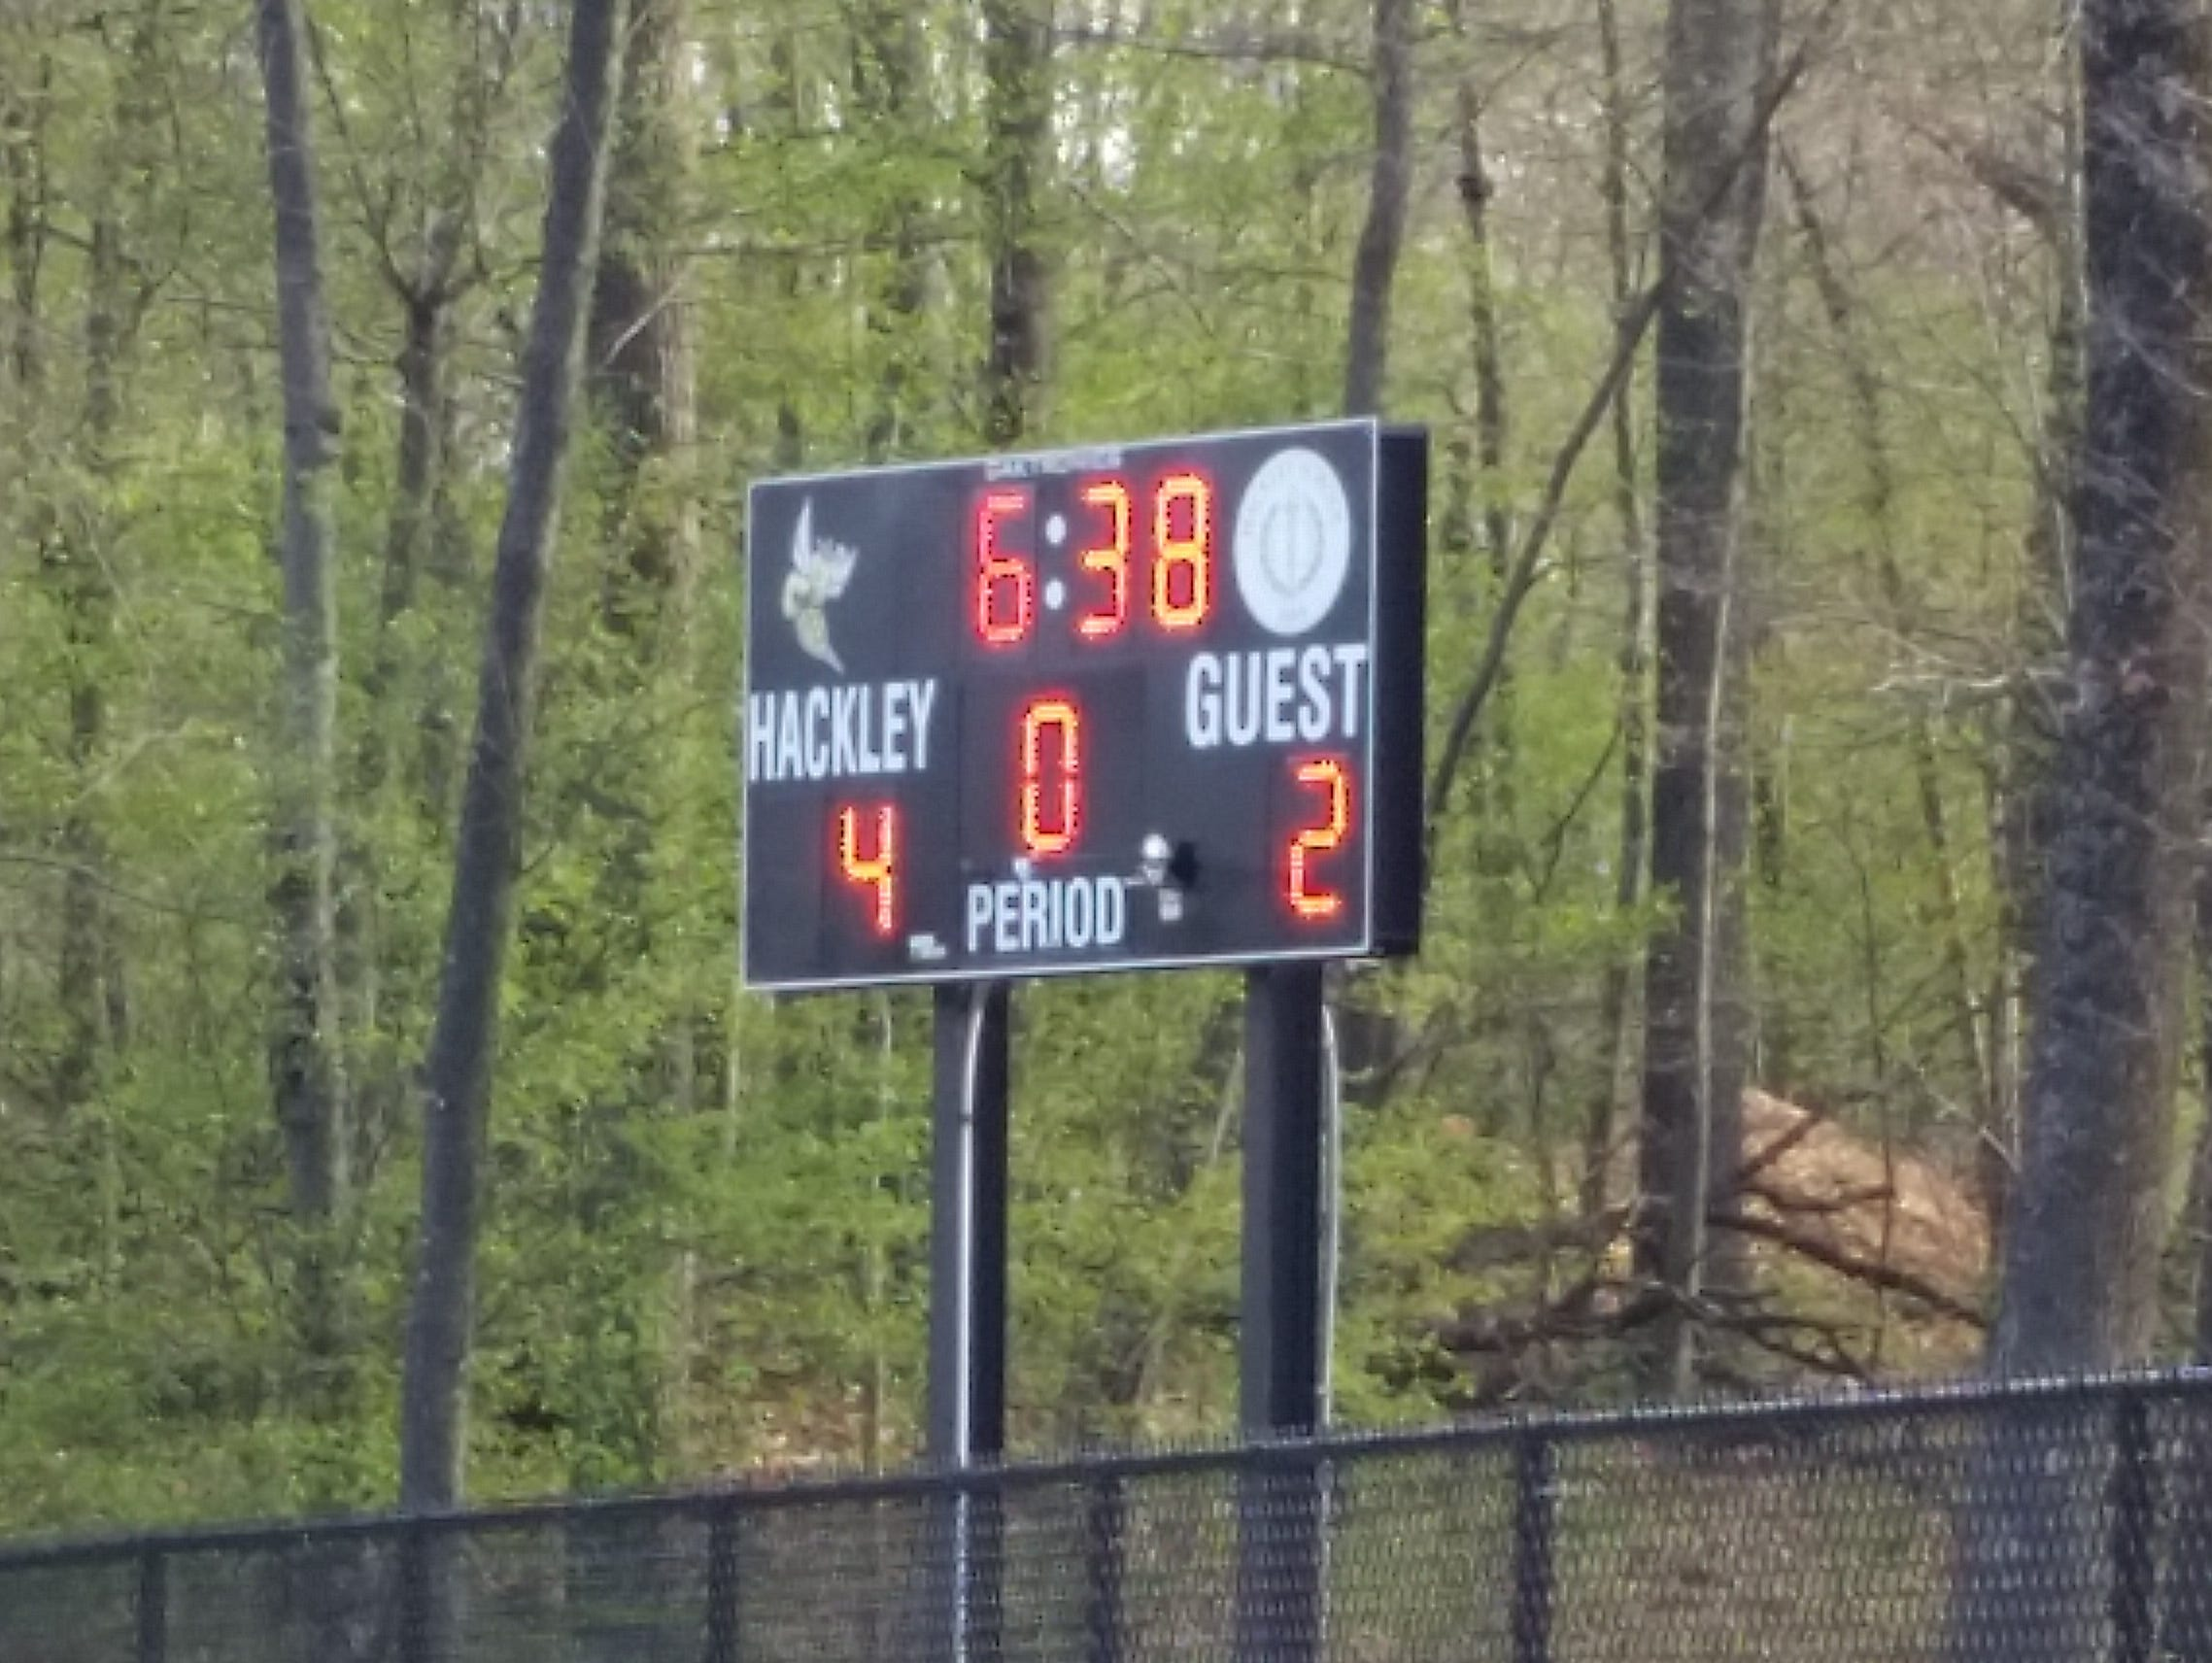 The scoreboard at the Hackley School's lacrosse field on Monday, April 25th, 2016